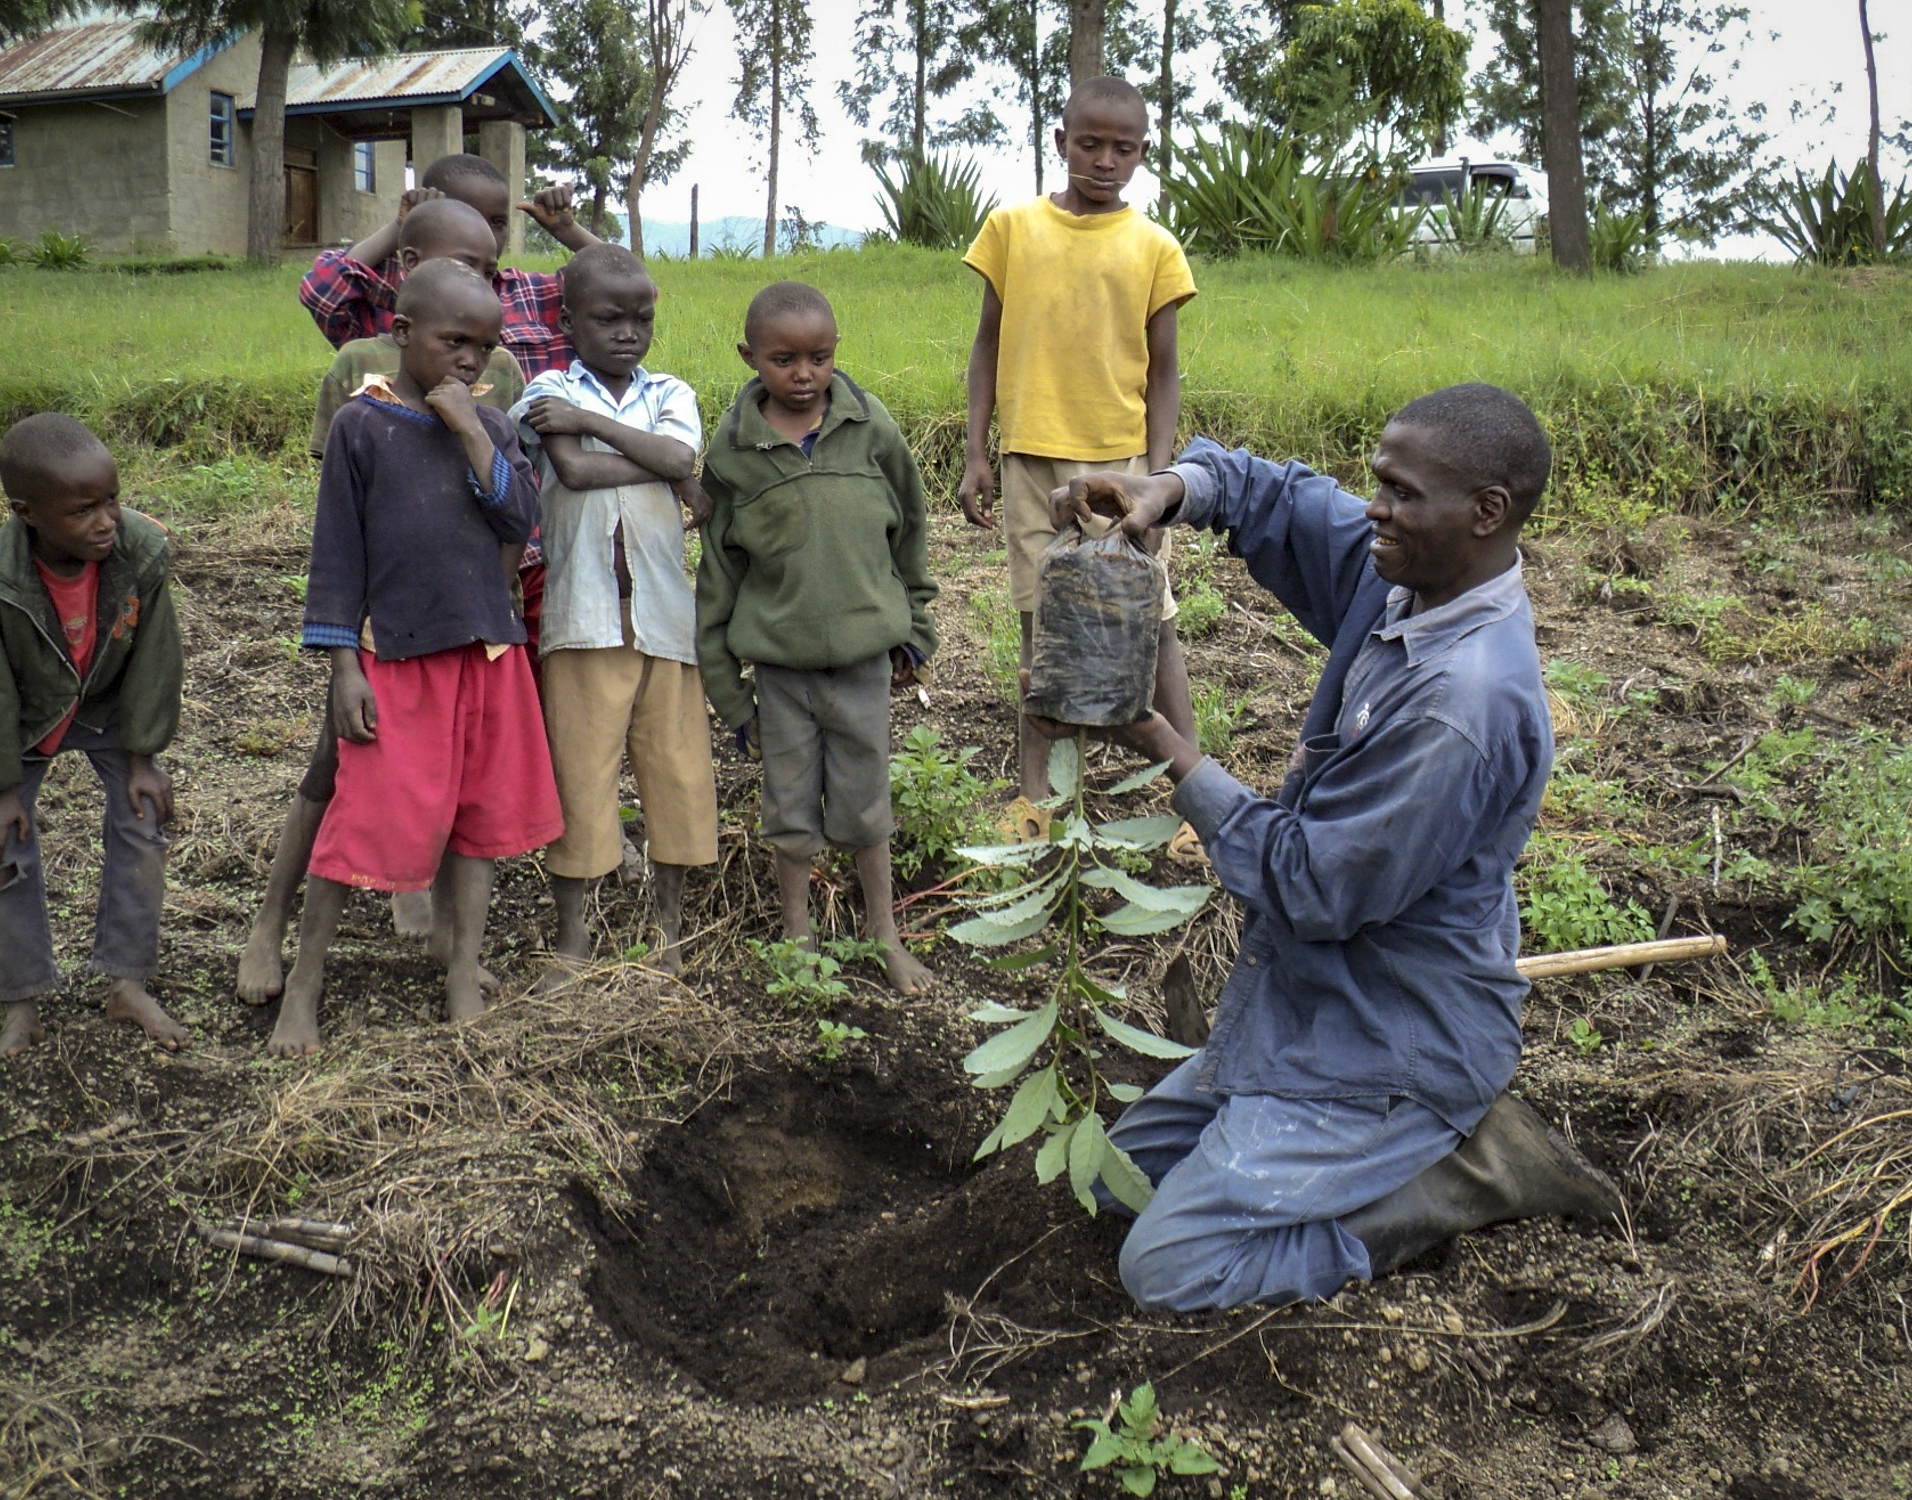 Jopsaht demonstrates how to plant a tree seedling-1.jpg